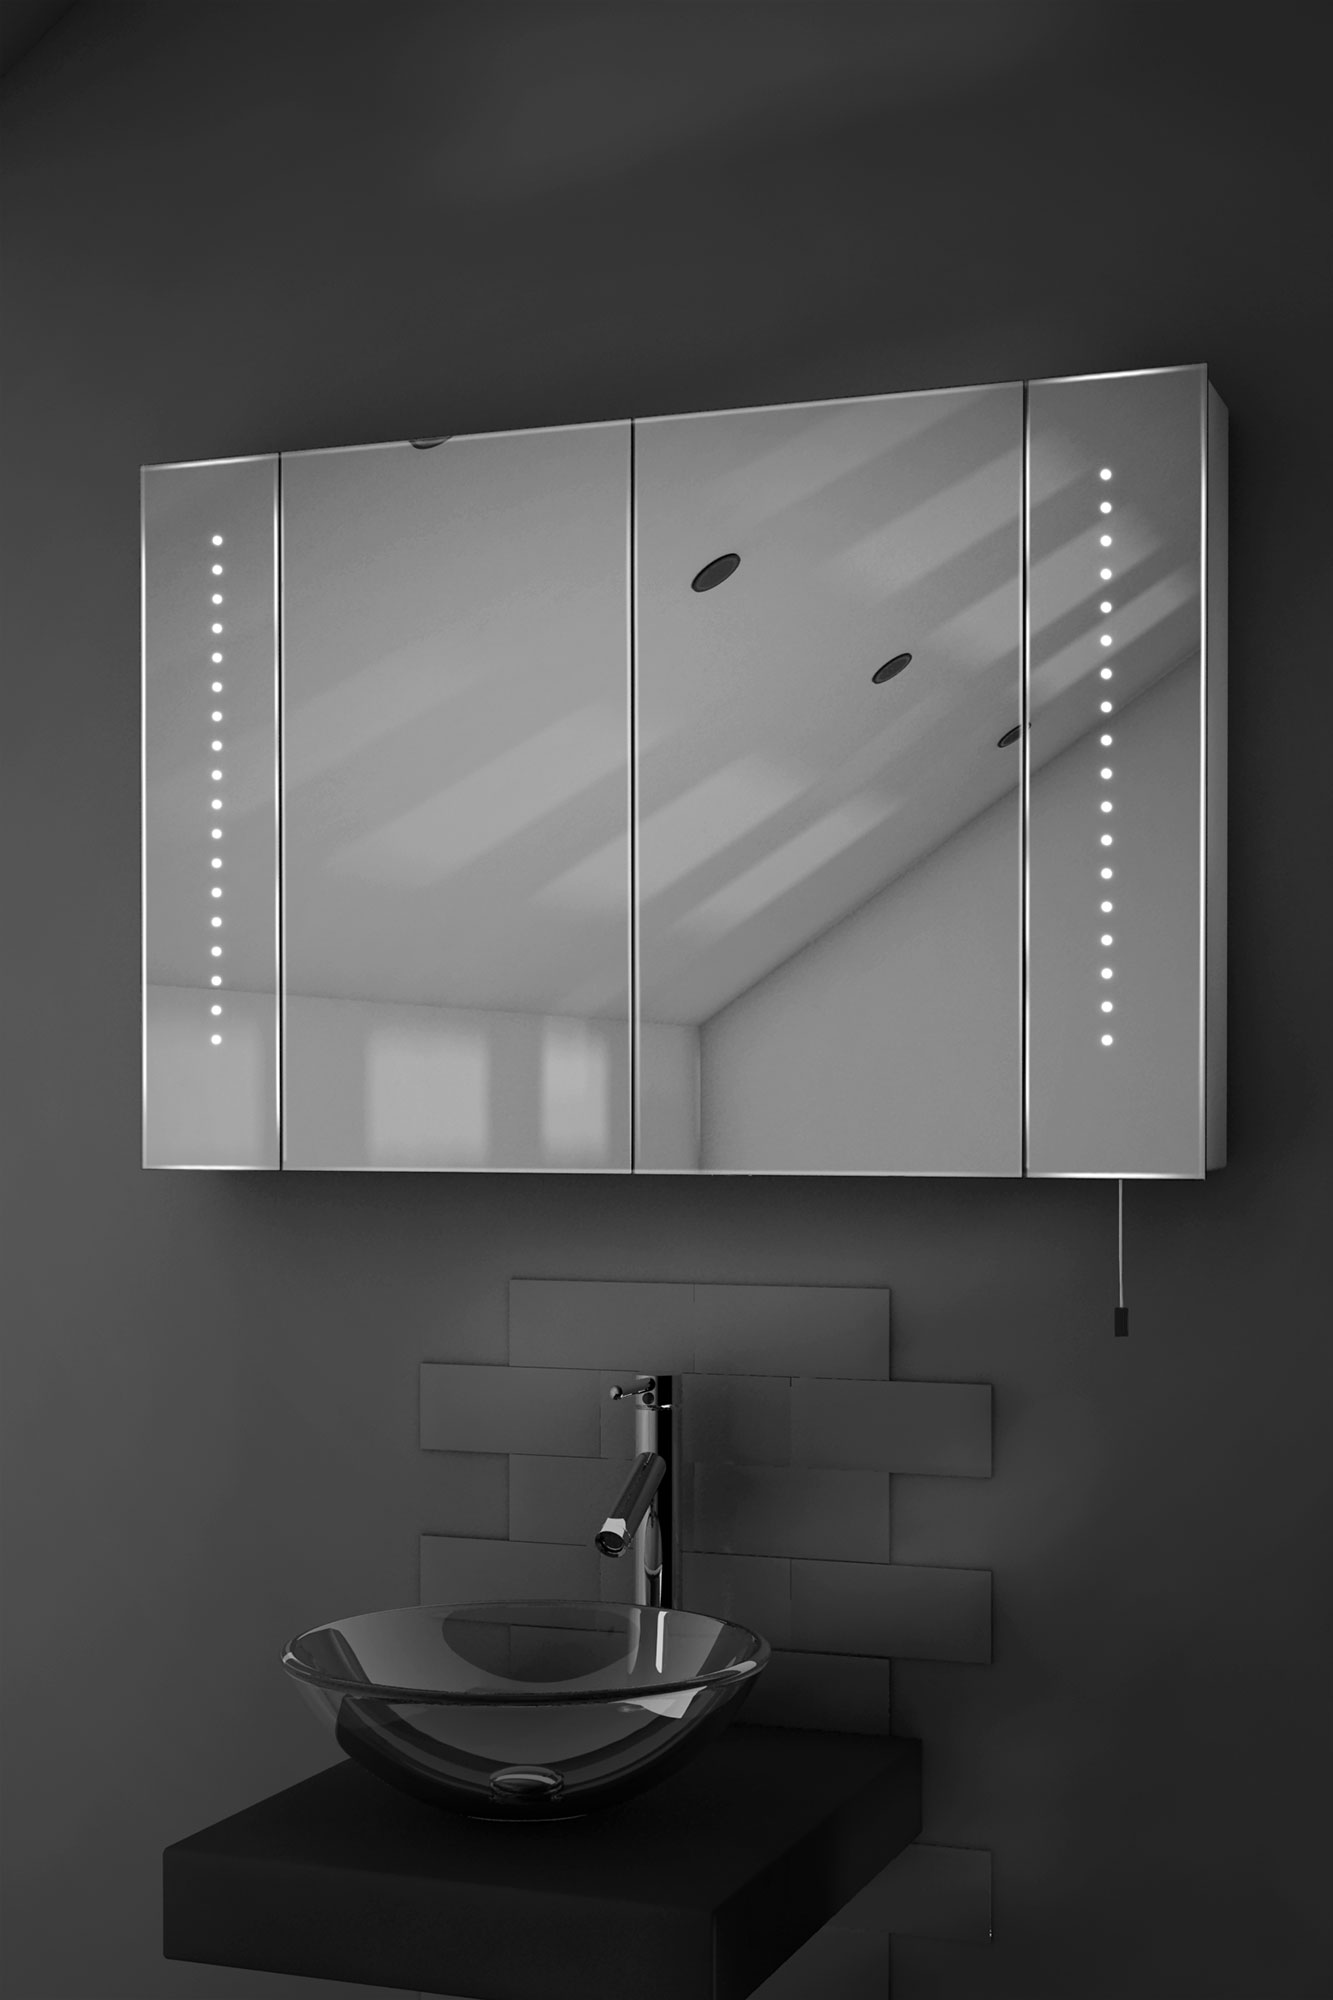 Bathroom mirror cabinets with light and shaver socket - Hatha Led Illuminated Battery Bathroom Mirror Cabinet With Pull